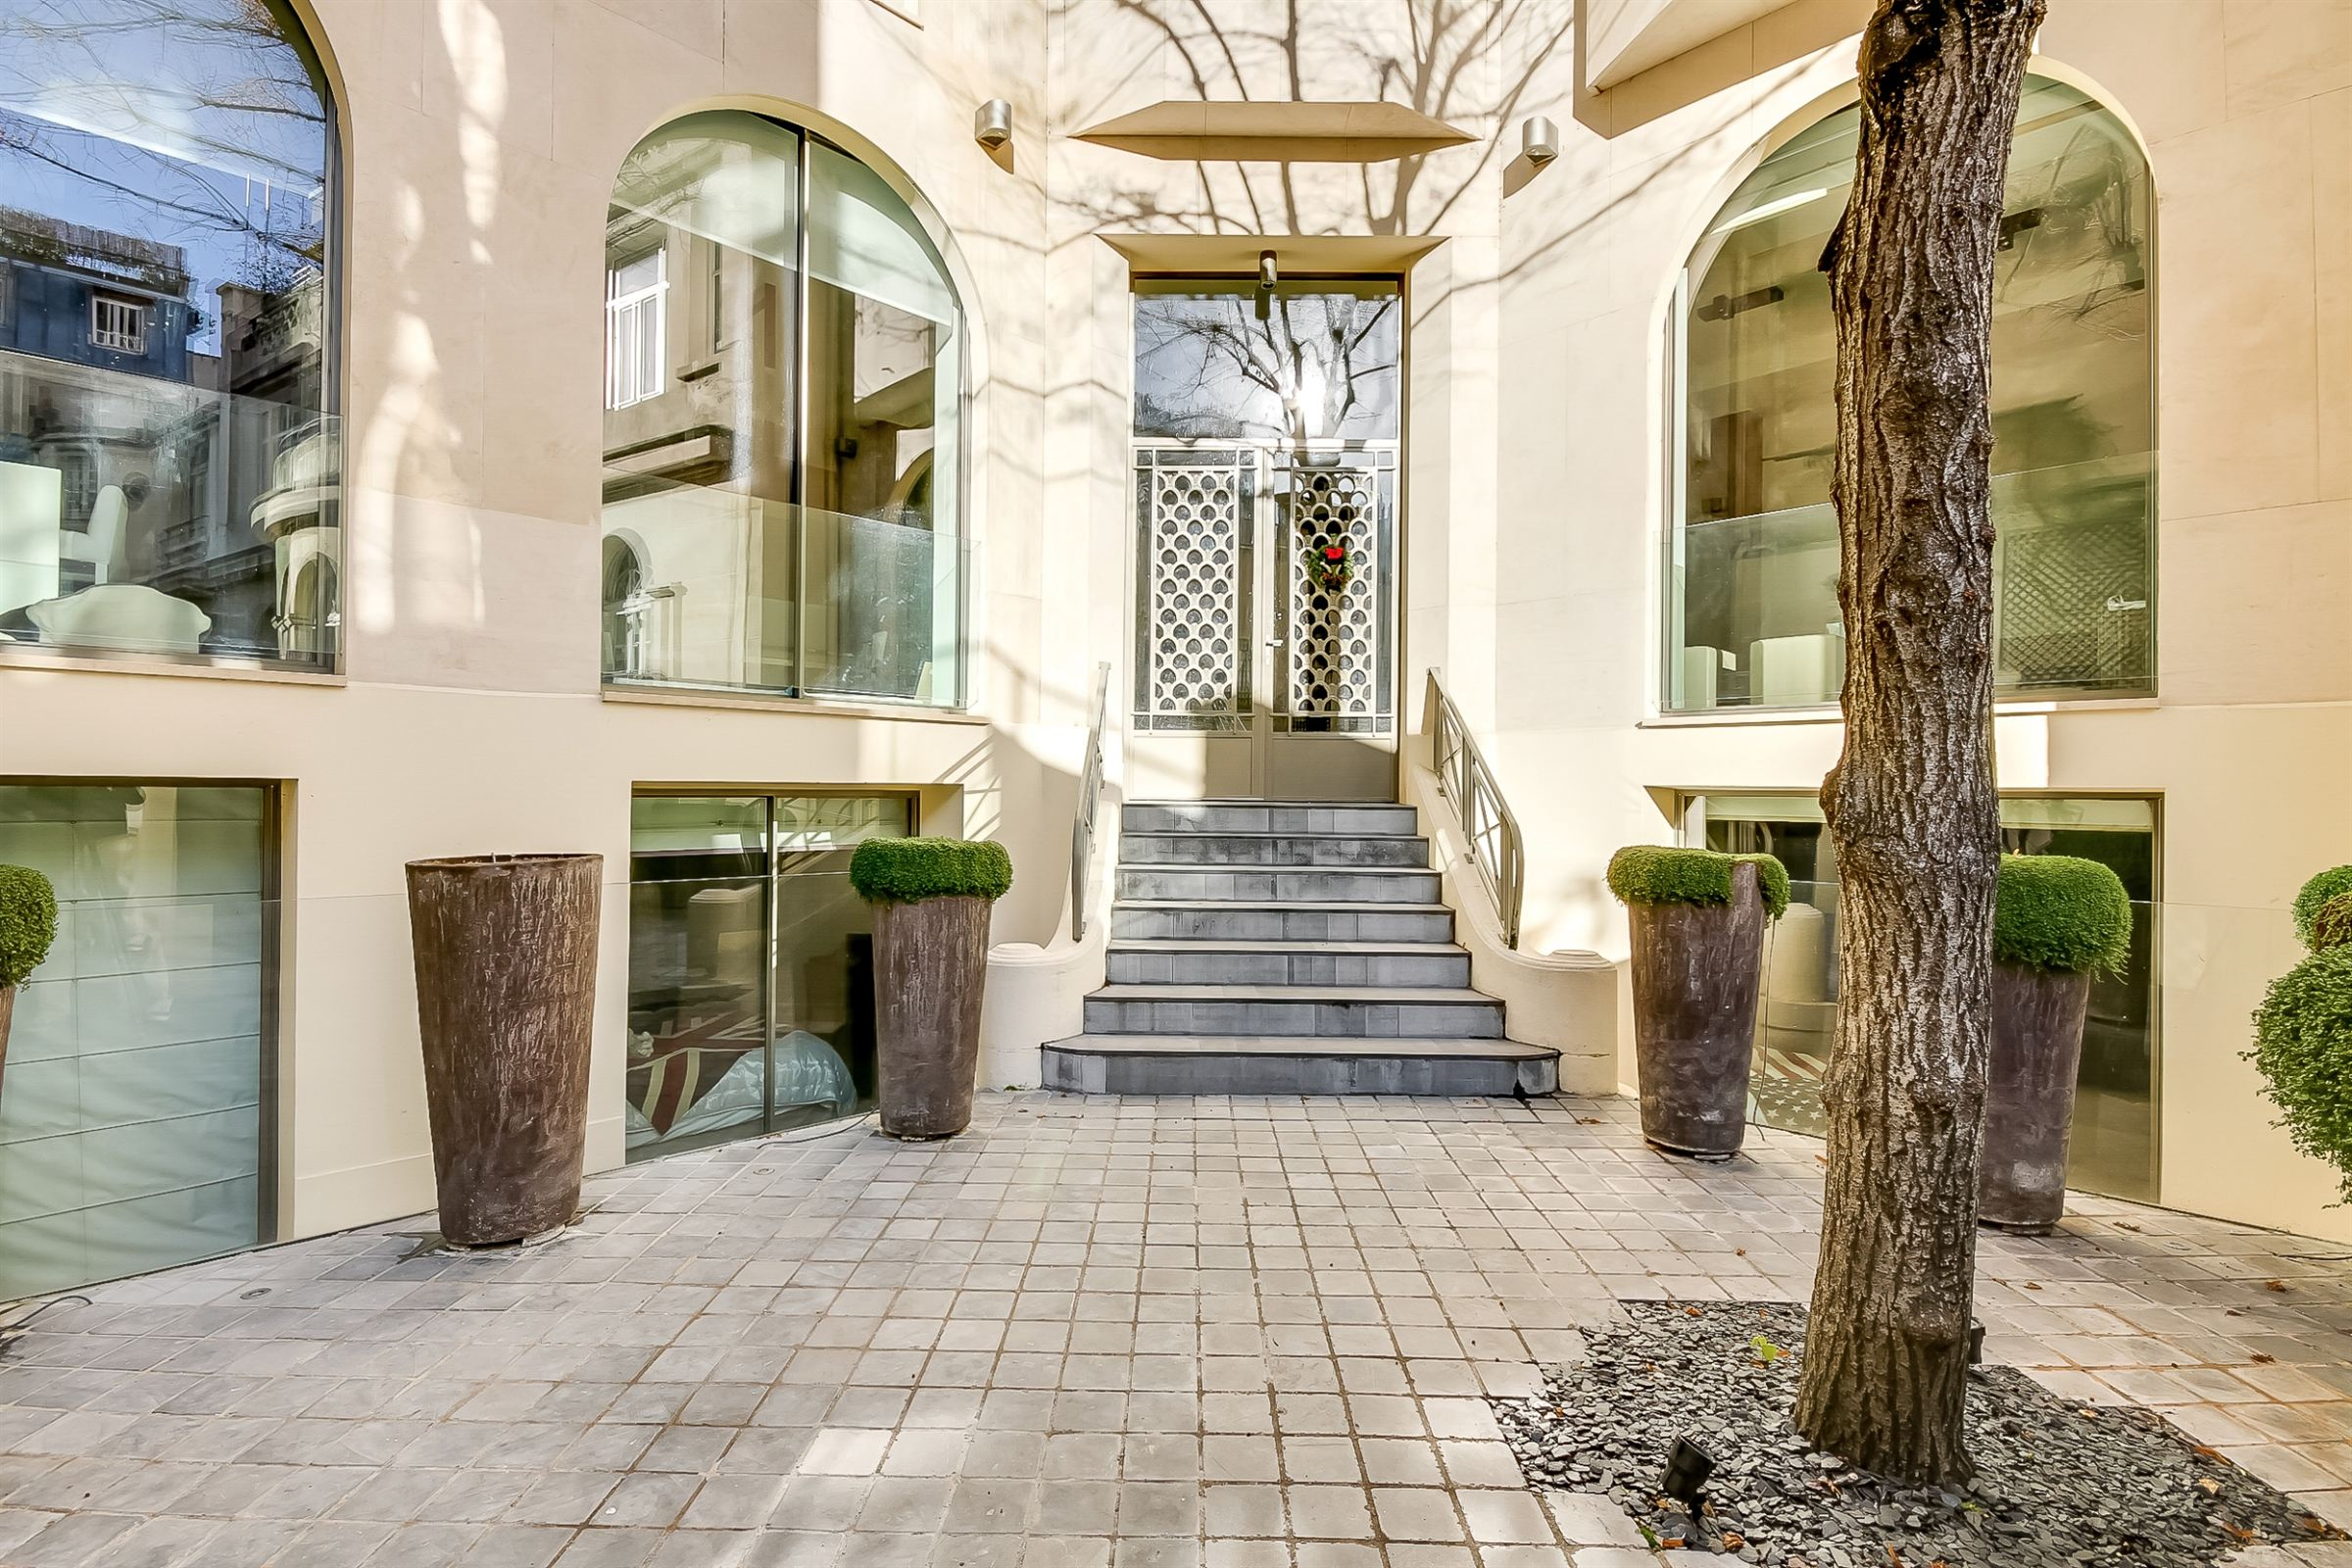 Single Family Home for Sale at Paris 16 - Passy. Private Mansion. Renovated. Paris, Paris 75016 France